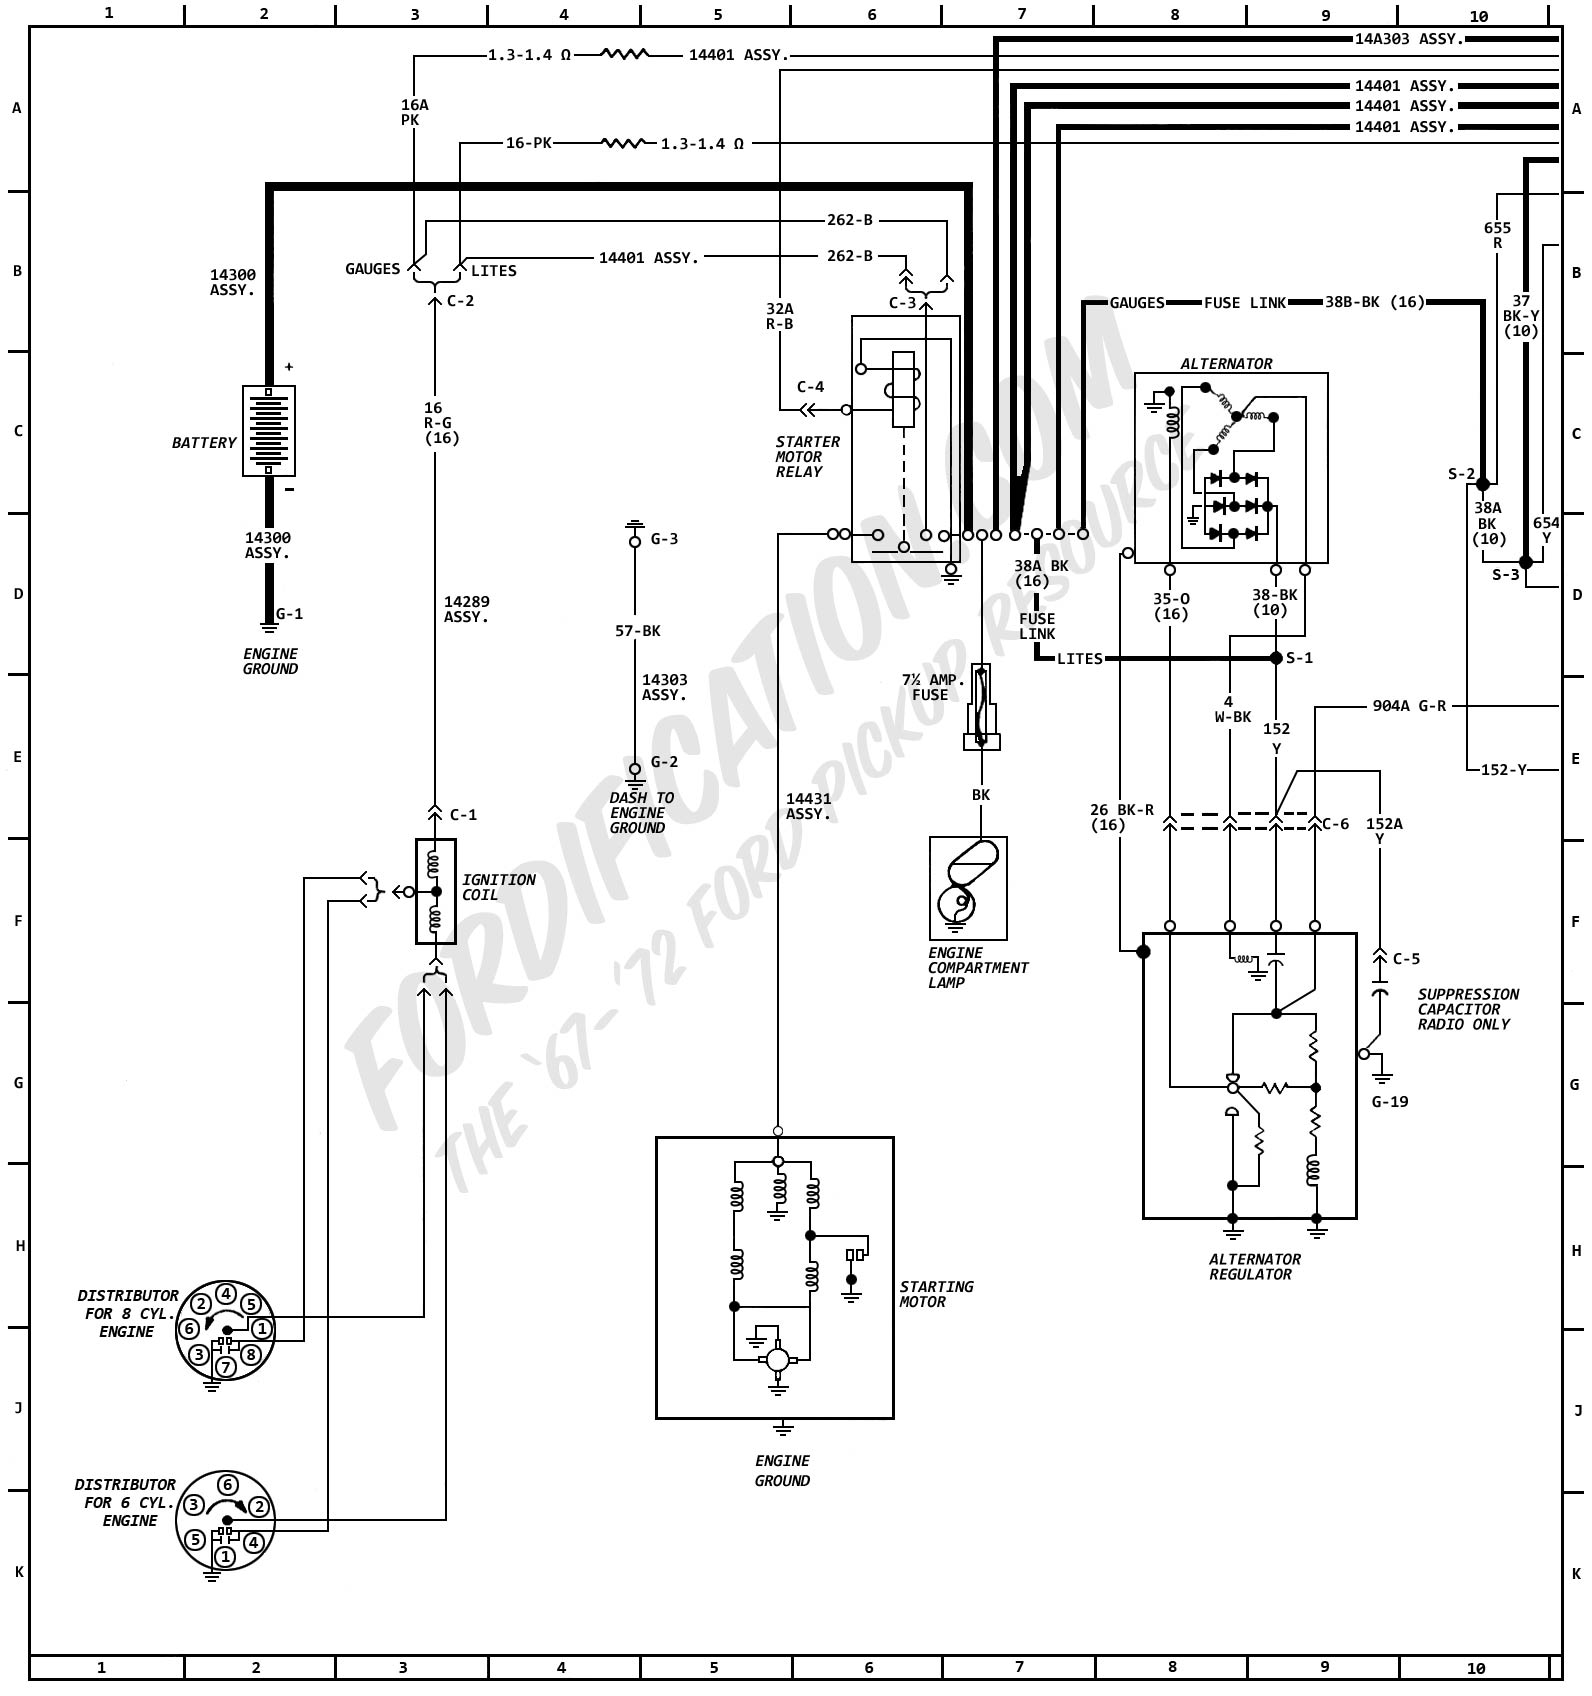 1972MasterWiring_01 1972 ford truck wiring diagrams fordification com  at bakdesigns.co